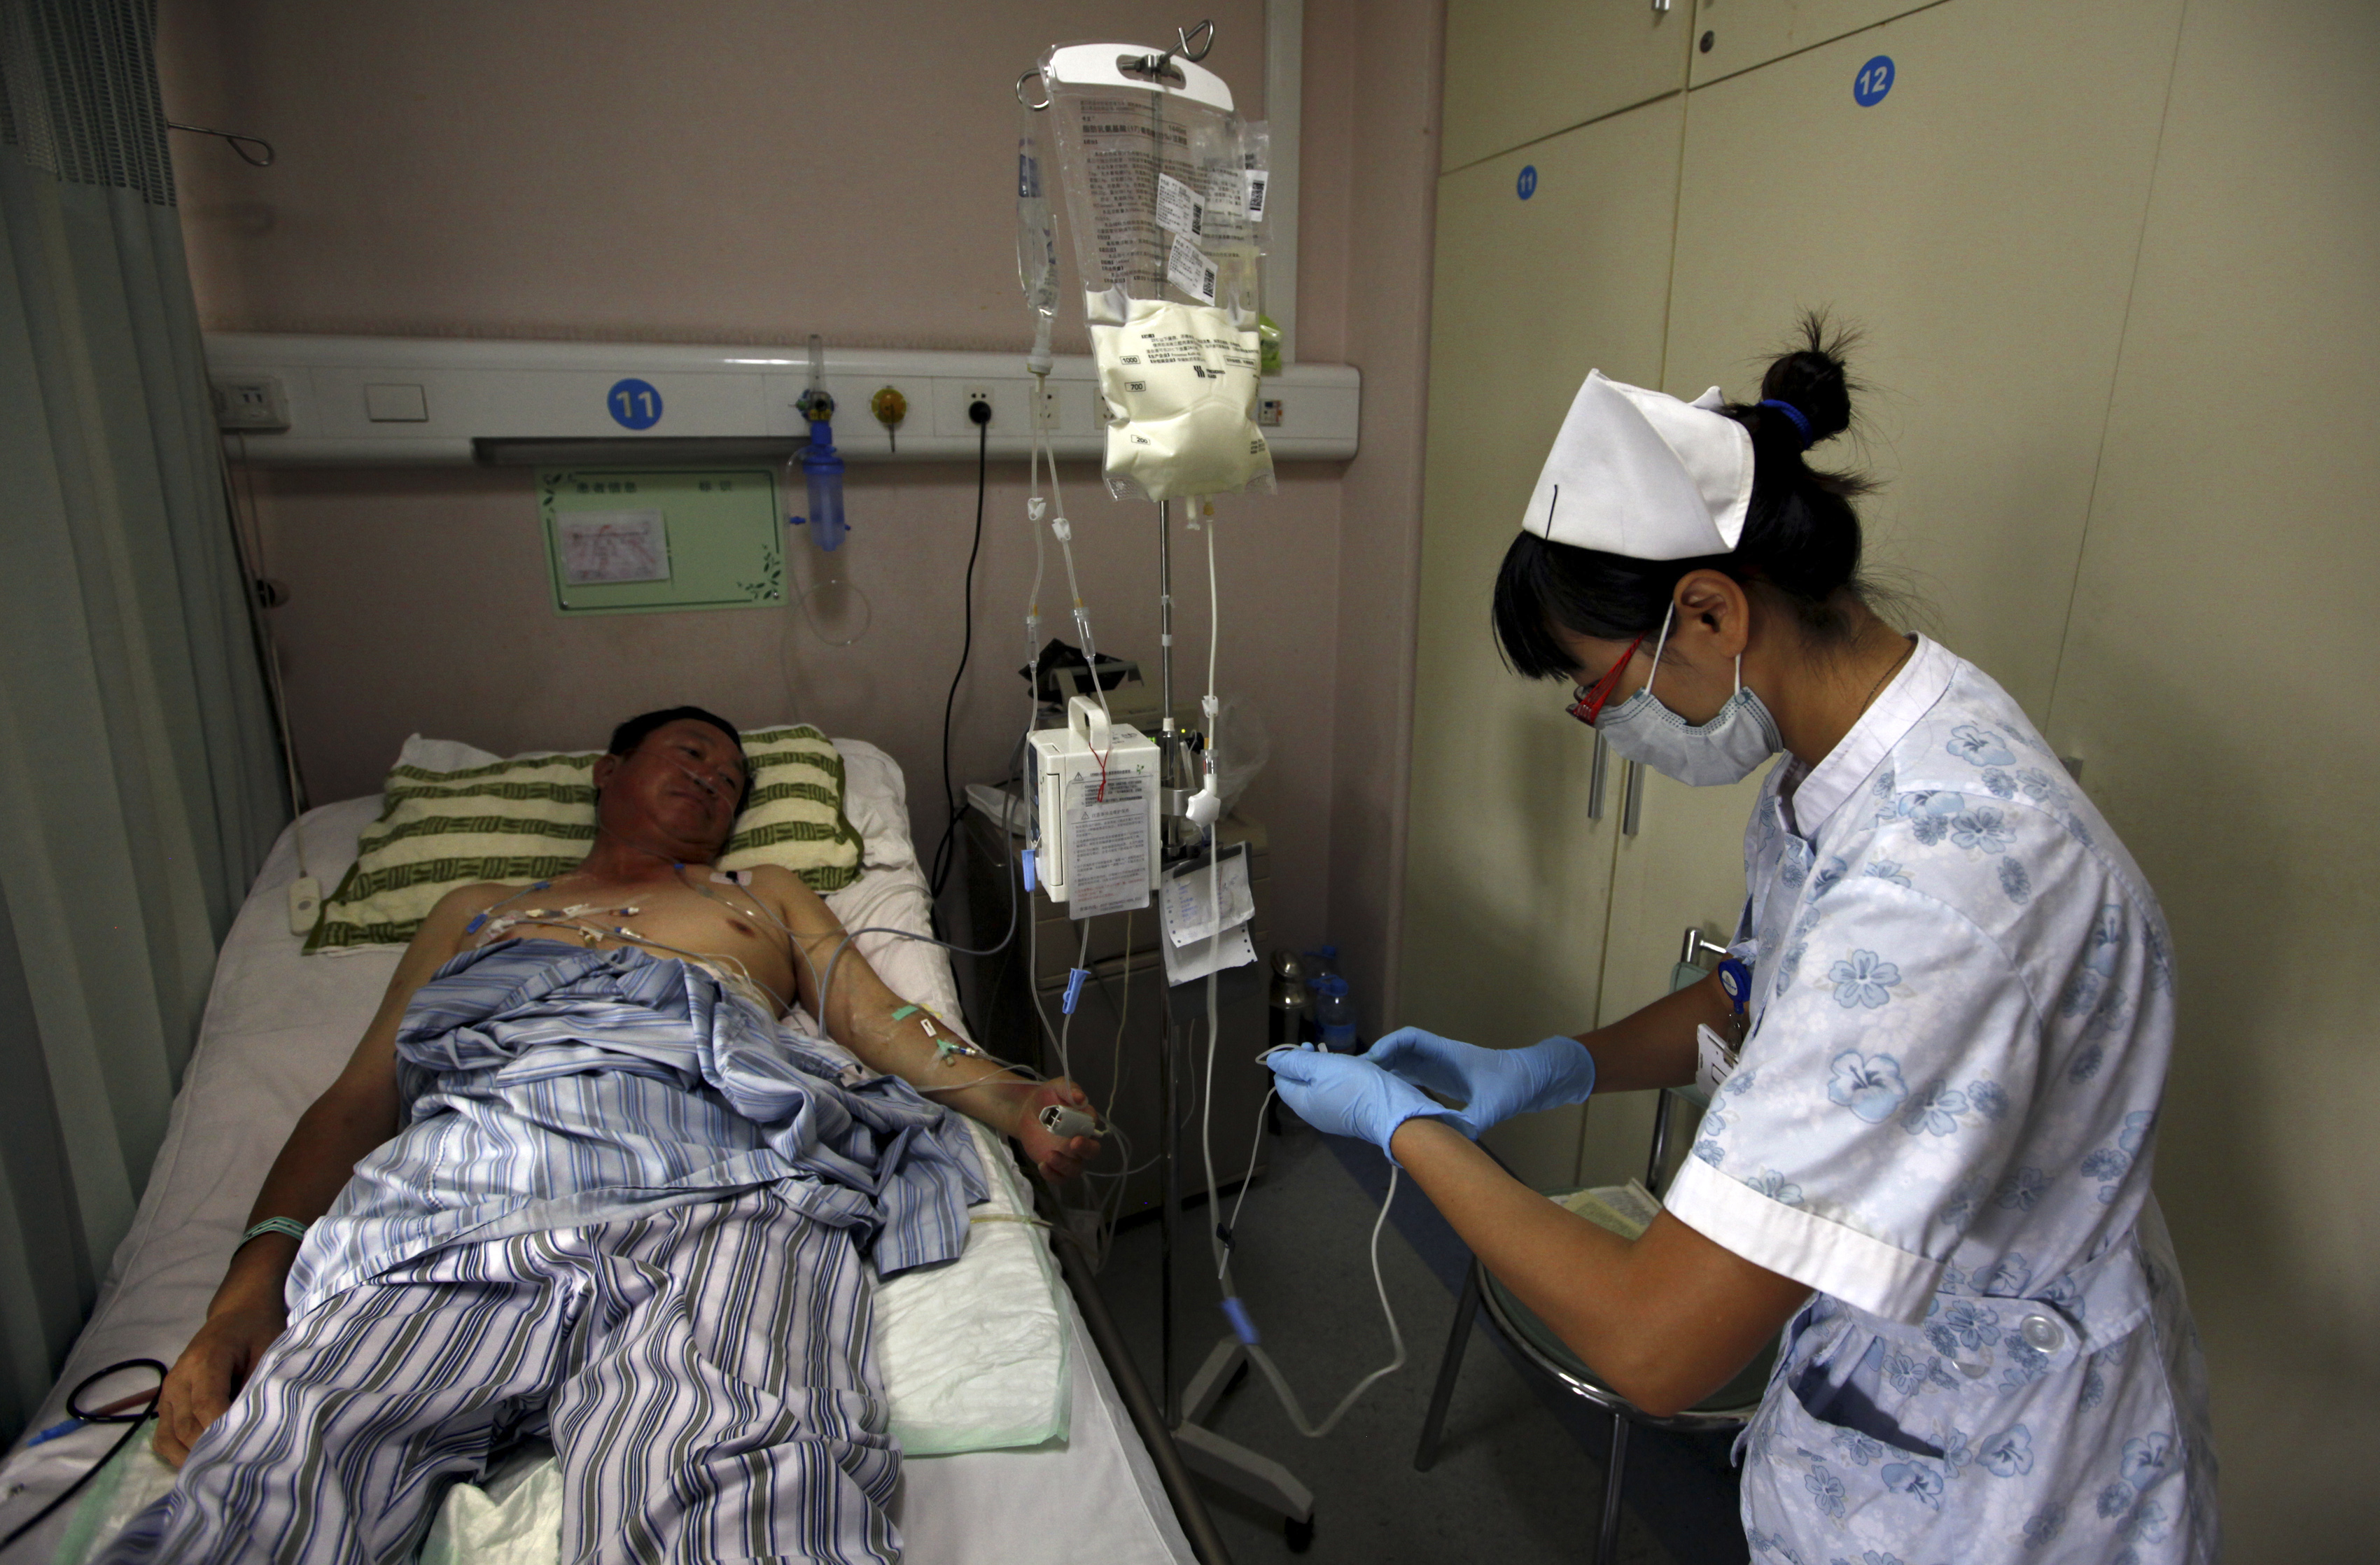 A nurse prepares to inject a cancer patient with medicine as she performs her daily rounds at the Beijing Cancer Hospital in this file photo from 2011. Cancer is spreading in China and kills millions annually